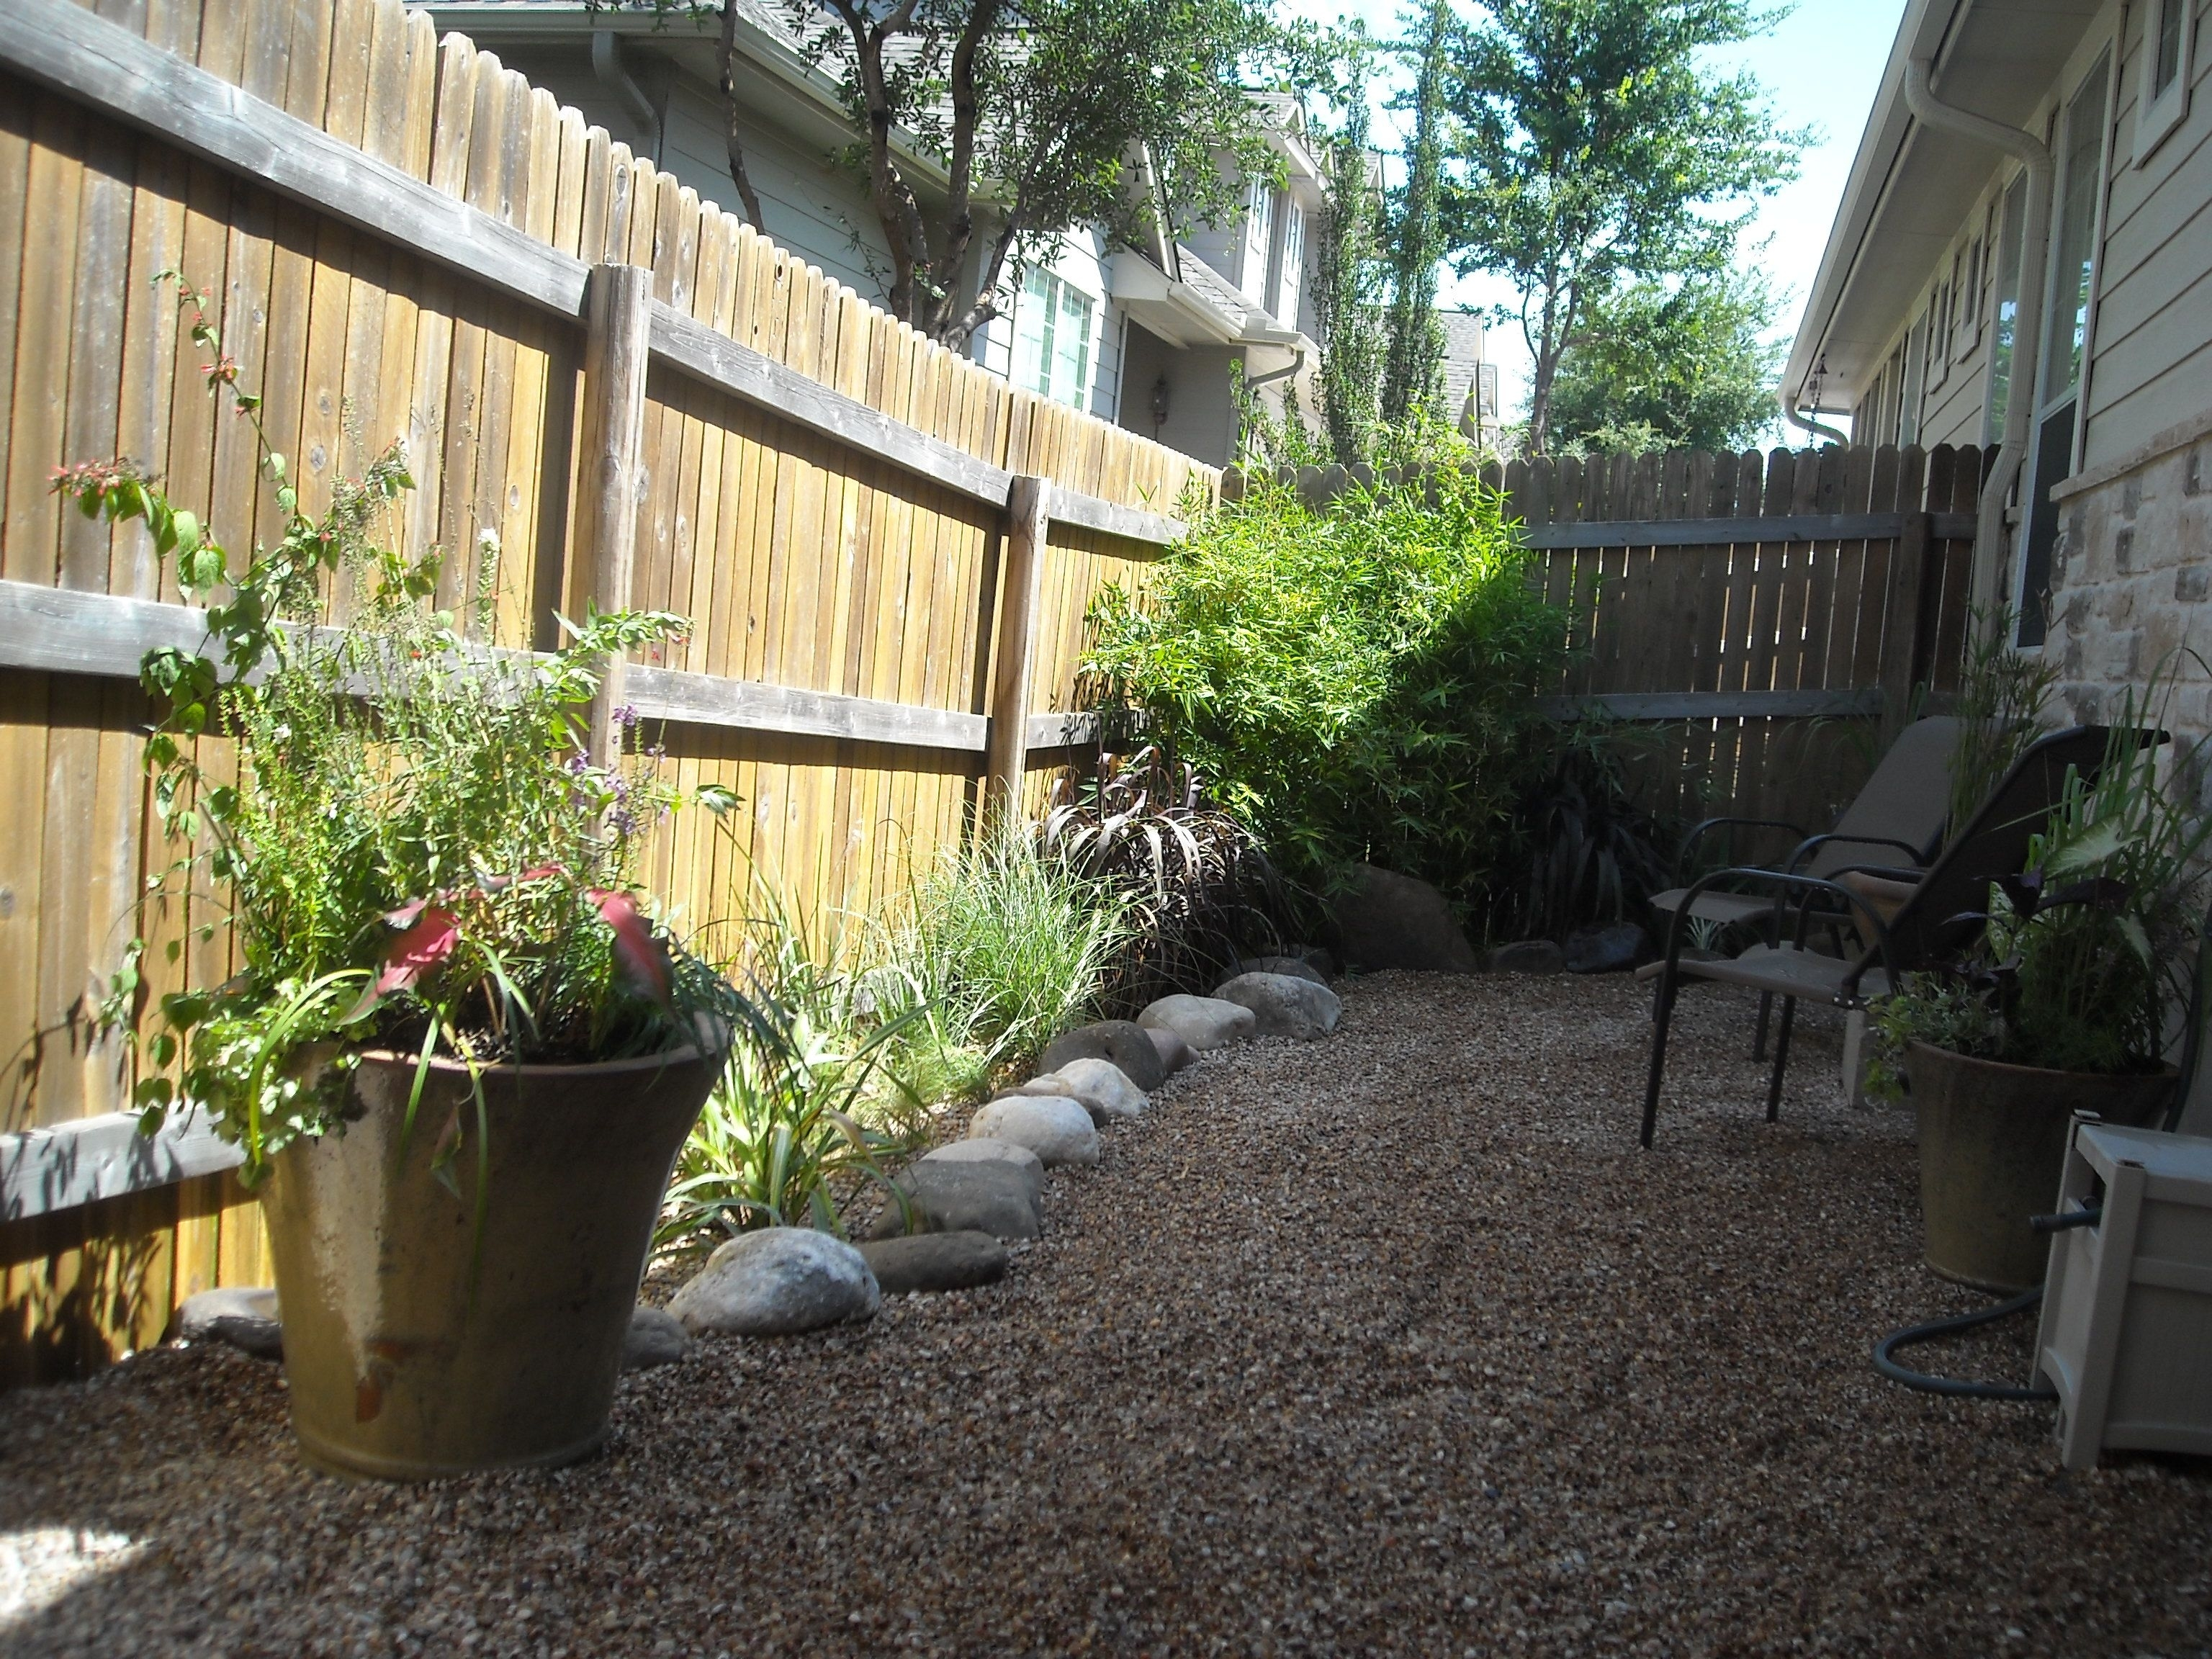 Small Spaces - Texas Zen Garden. This Is A Great Little Reading pertaining to Zen Gardens For Small Spaces